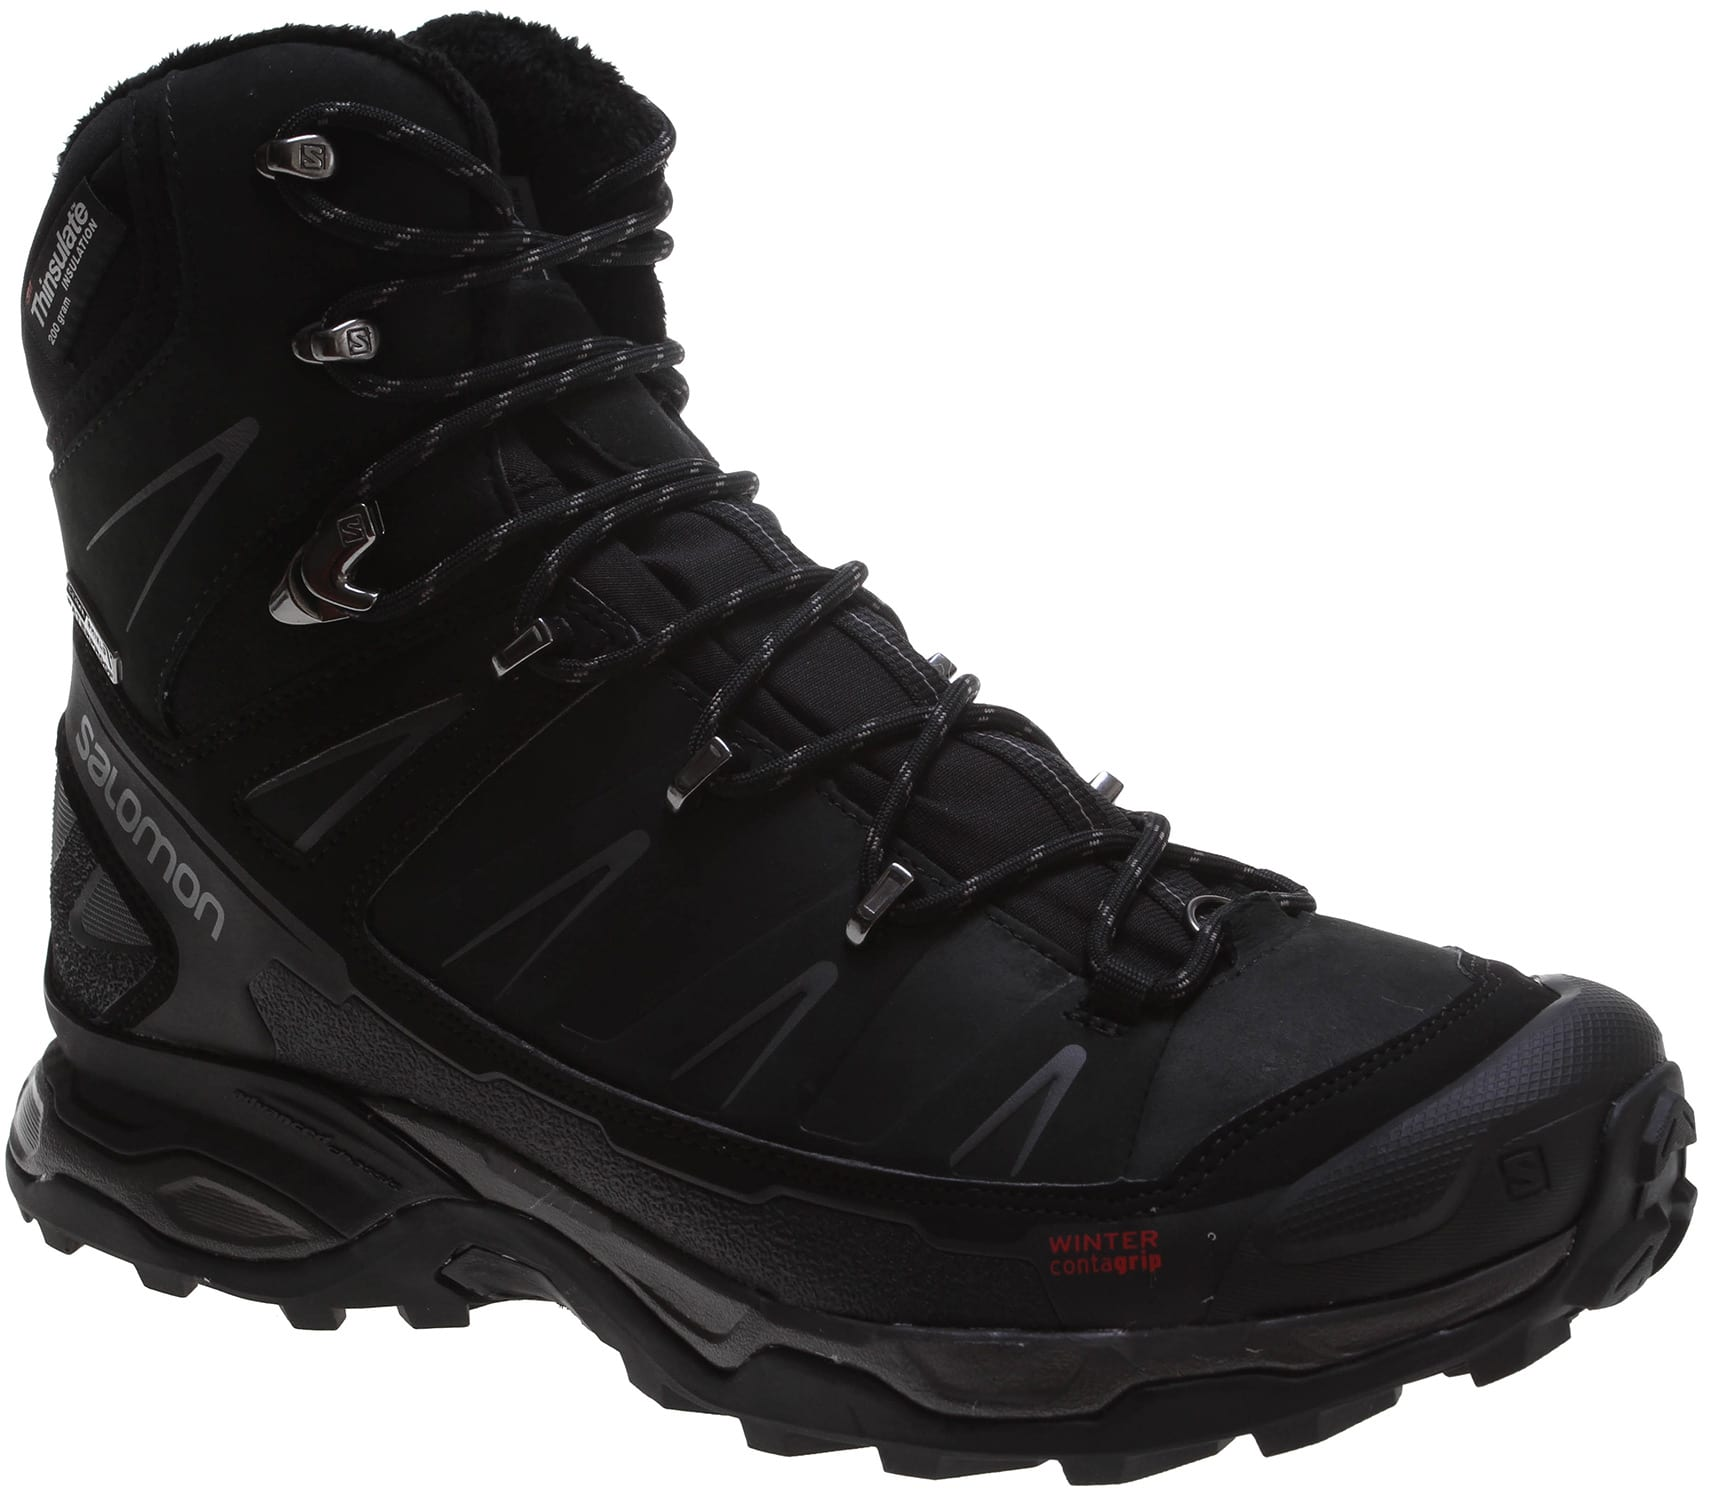 wholesale dealer b4a36 a47c6 Salomon X Ultra Winter CS WP Hiking Boots